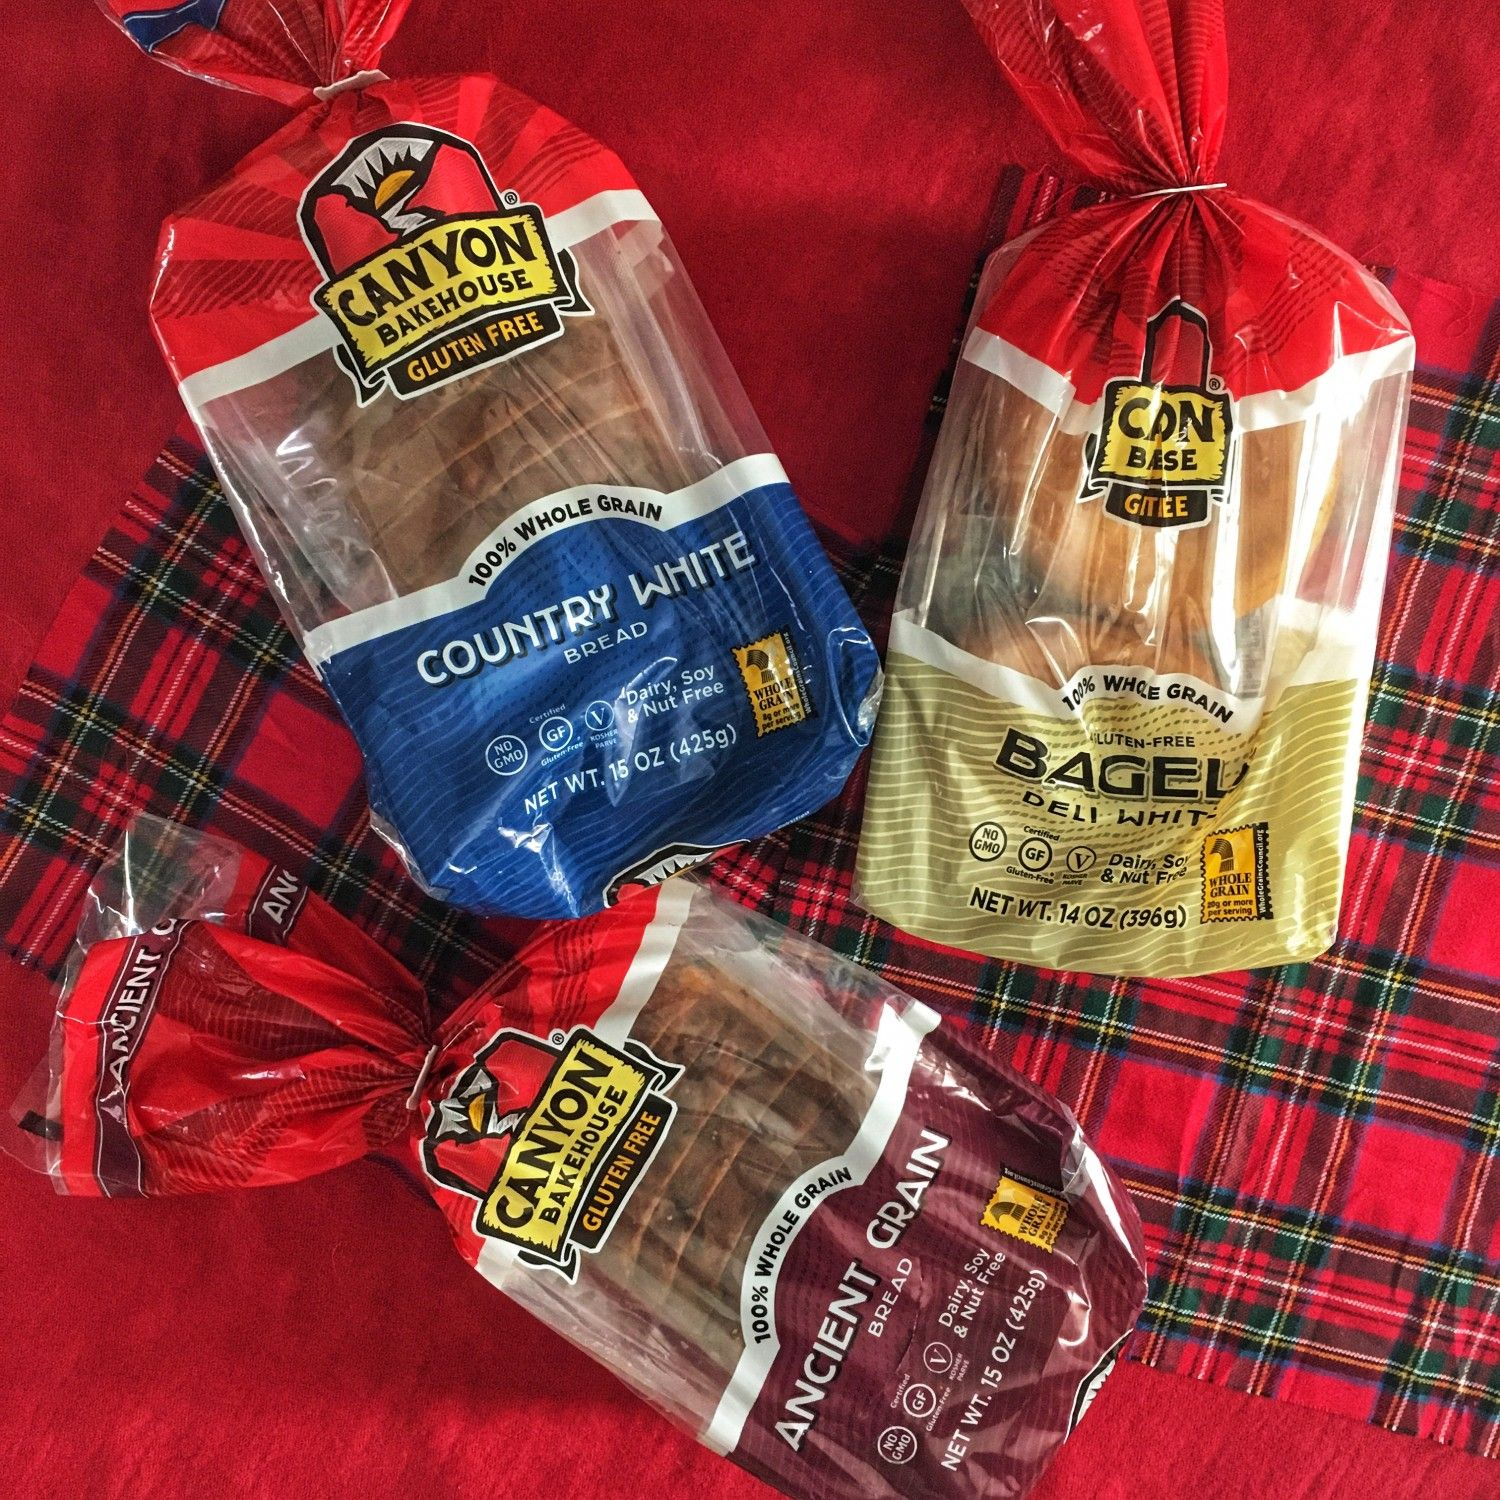 Canyon Bakehouse StayFresh Packaging Gluten free bakery